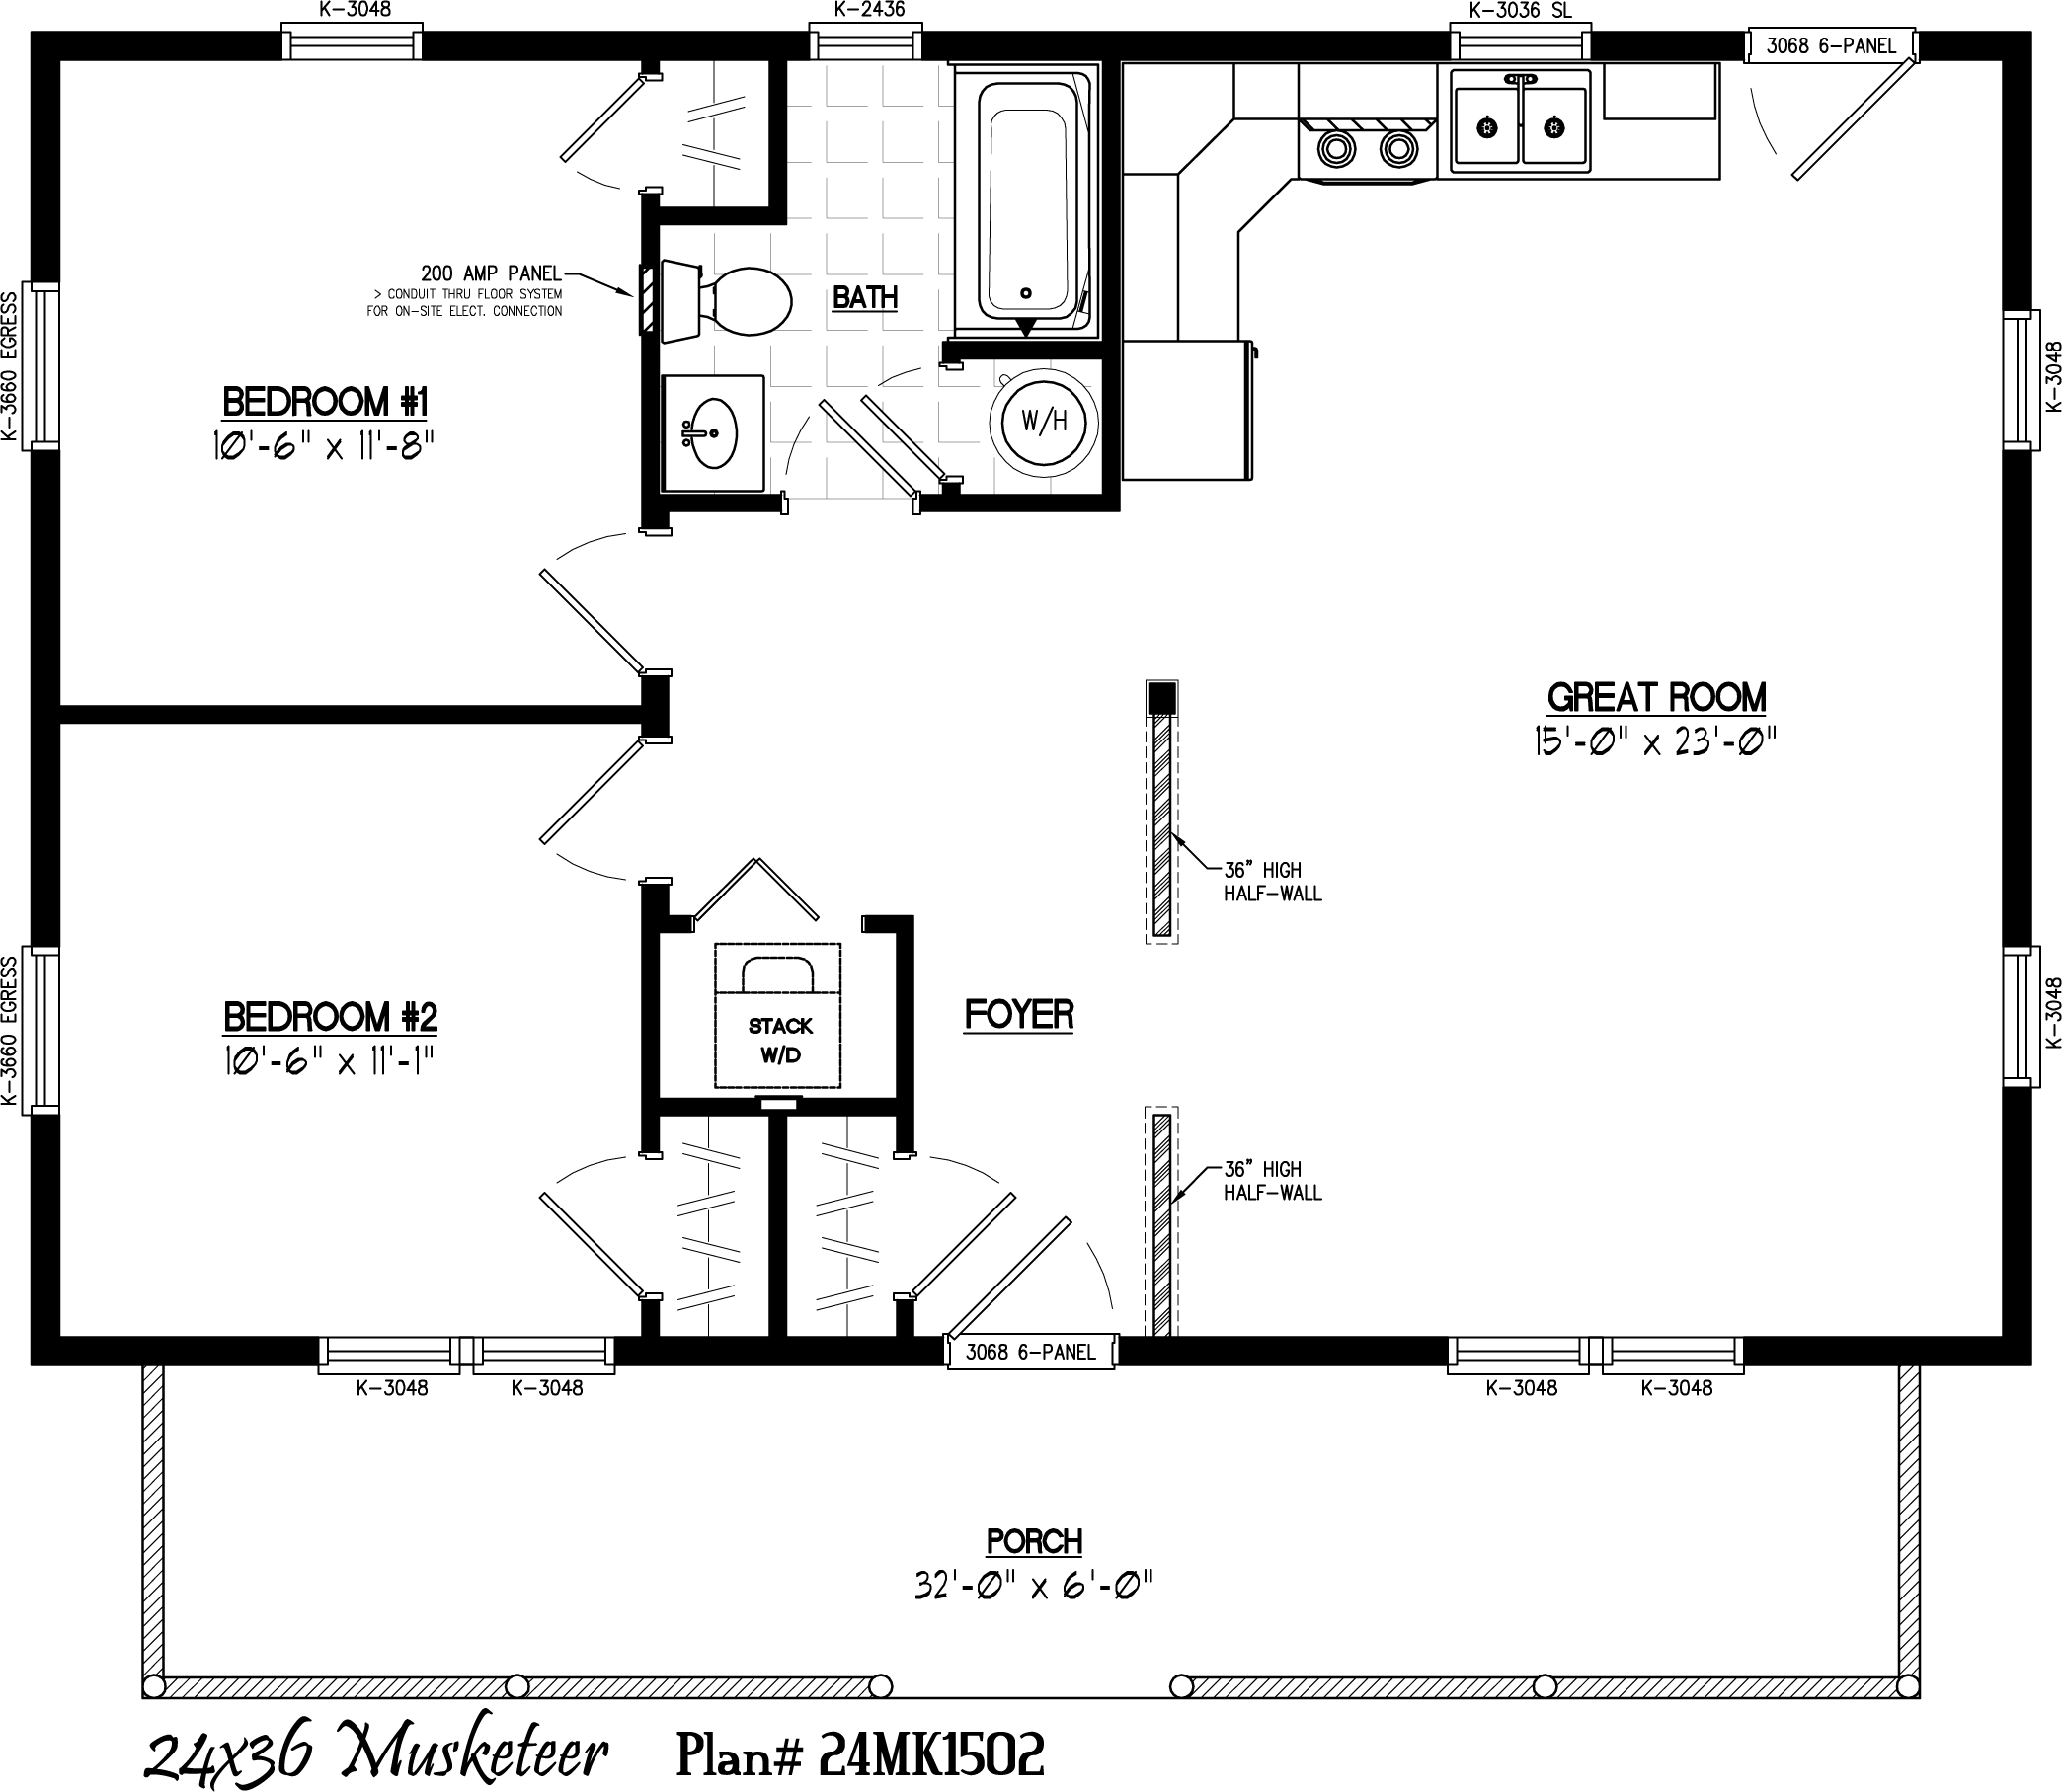 Guest House 30 X 22 Floor Layout